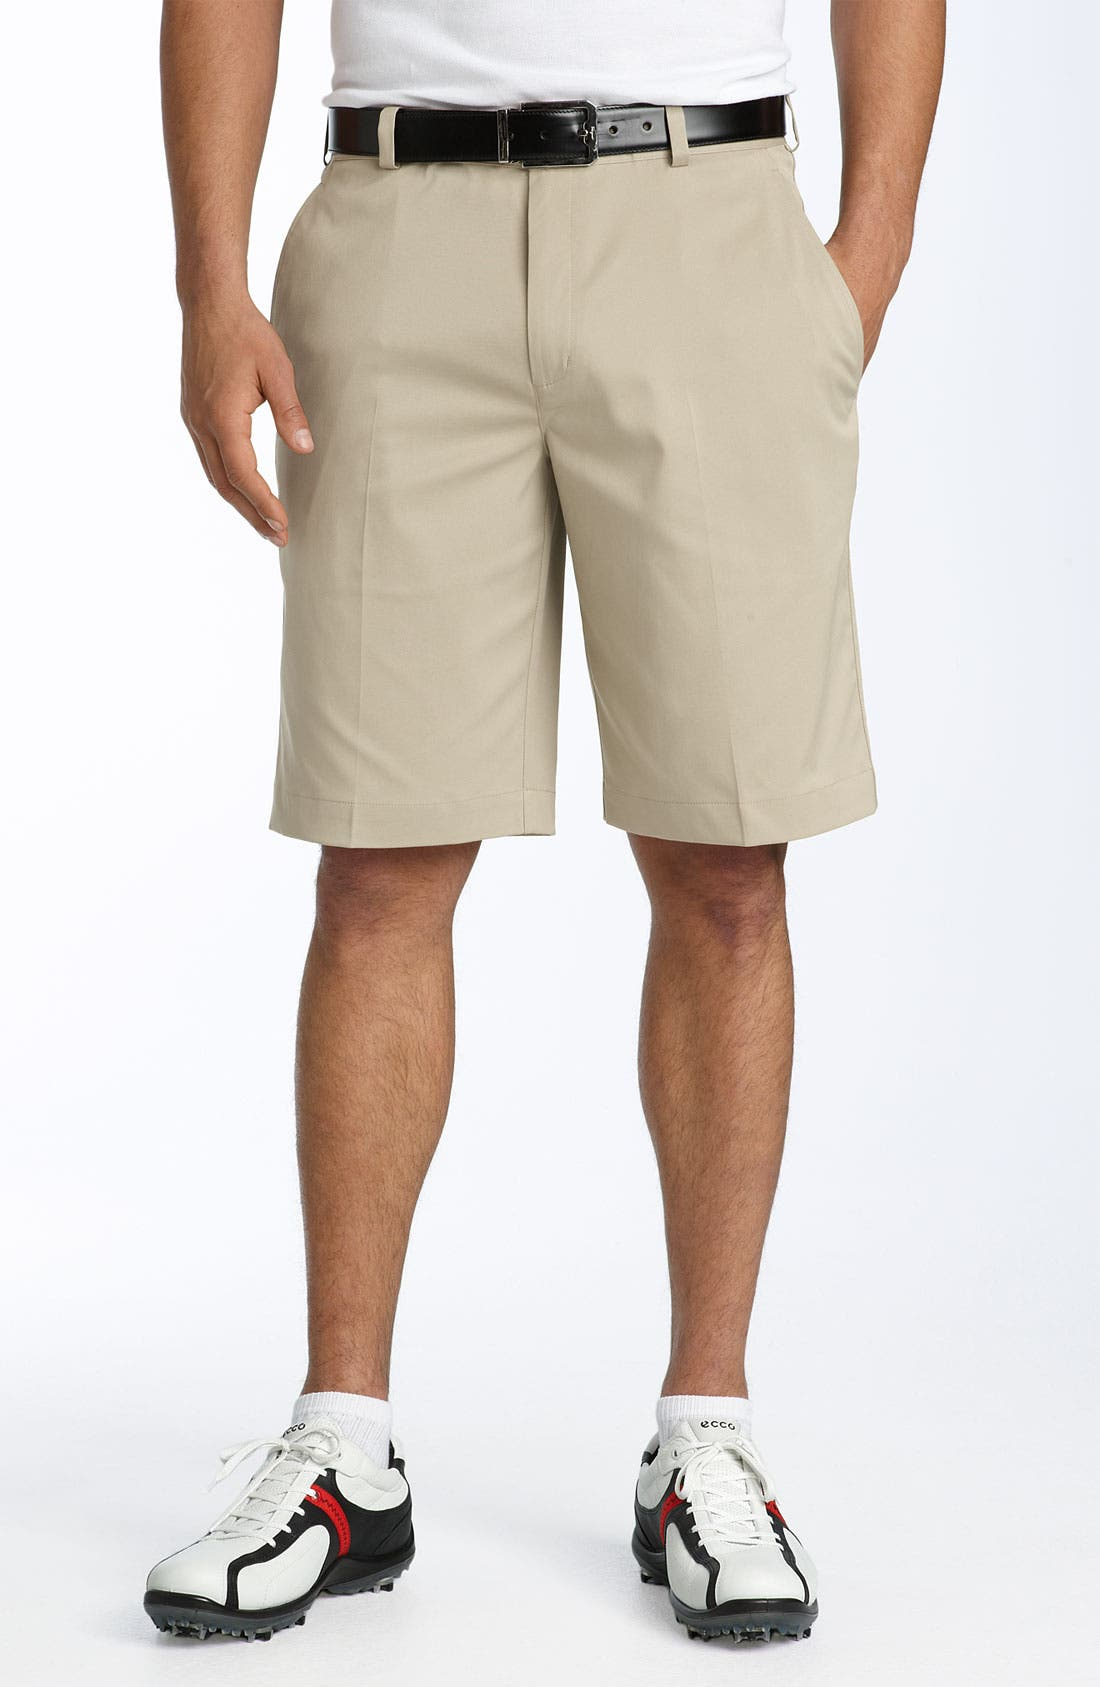 Main Image - Nike Golf Dri-FIT Flat Front Golf Shorts